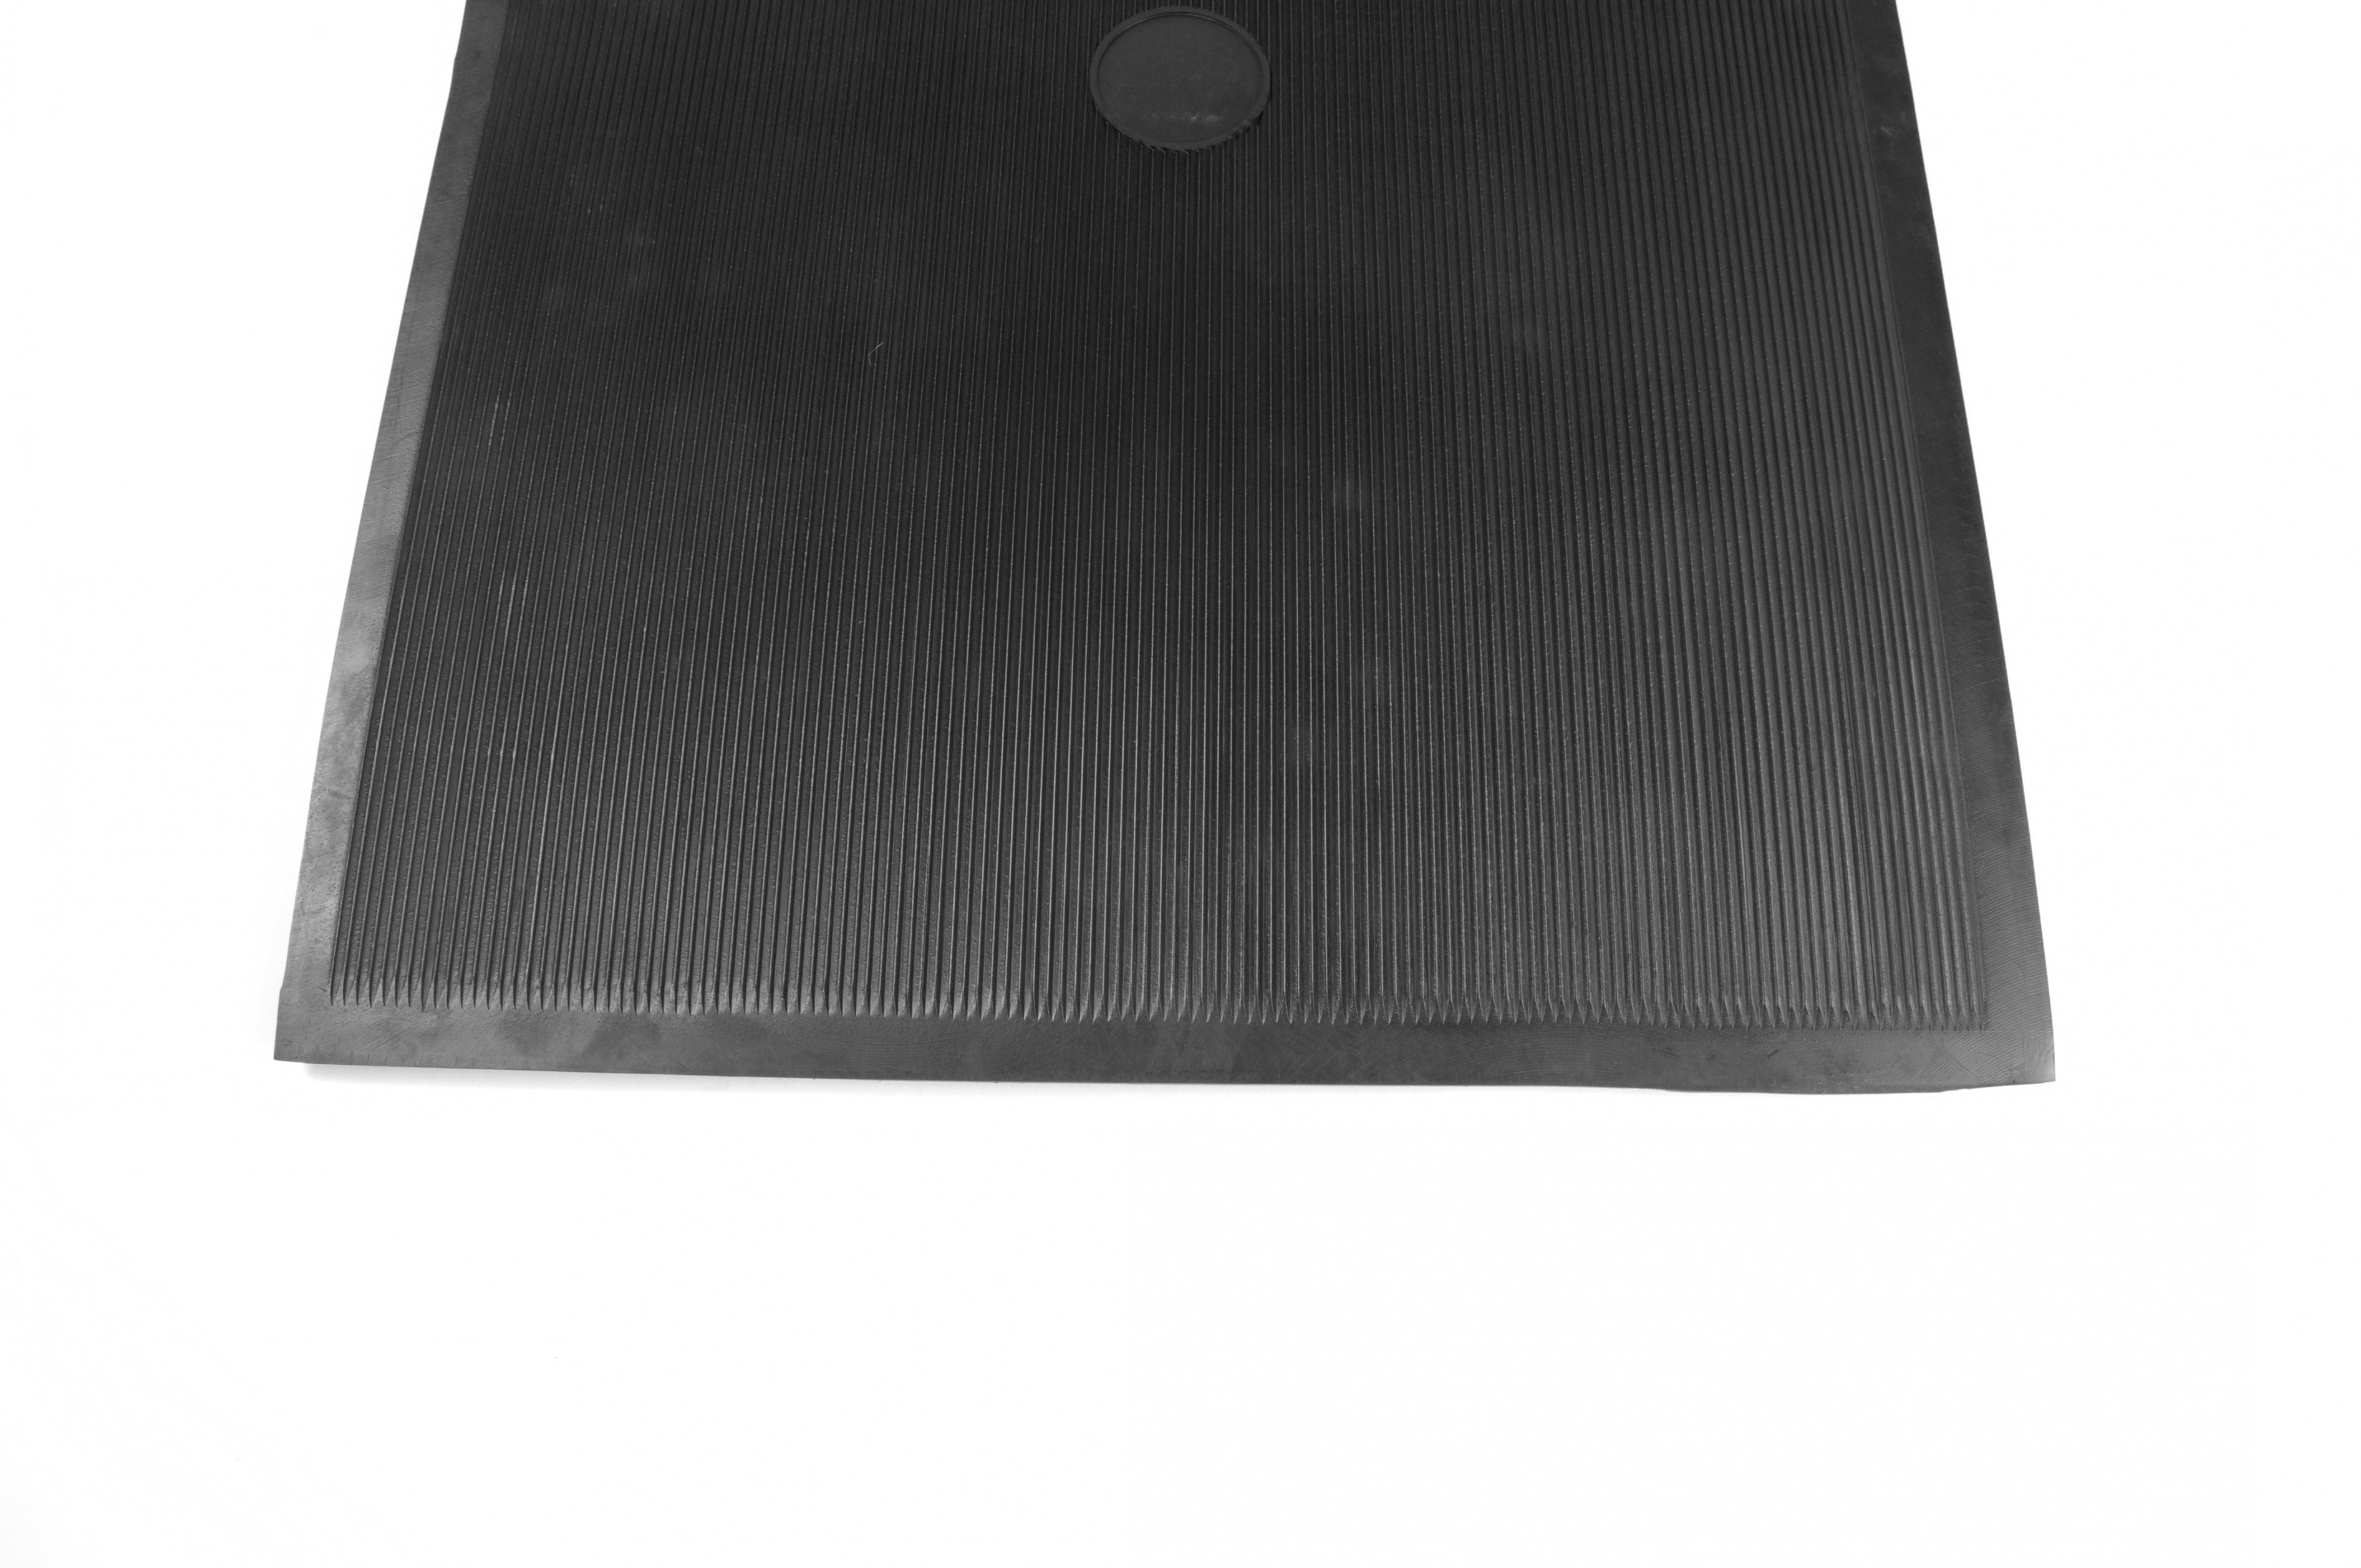 Top View of Flat Corrugated Rubber Mat